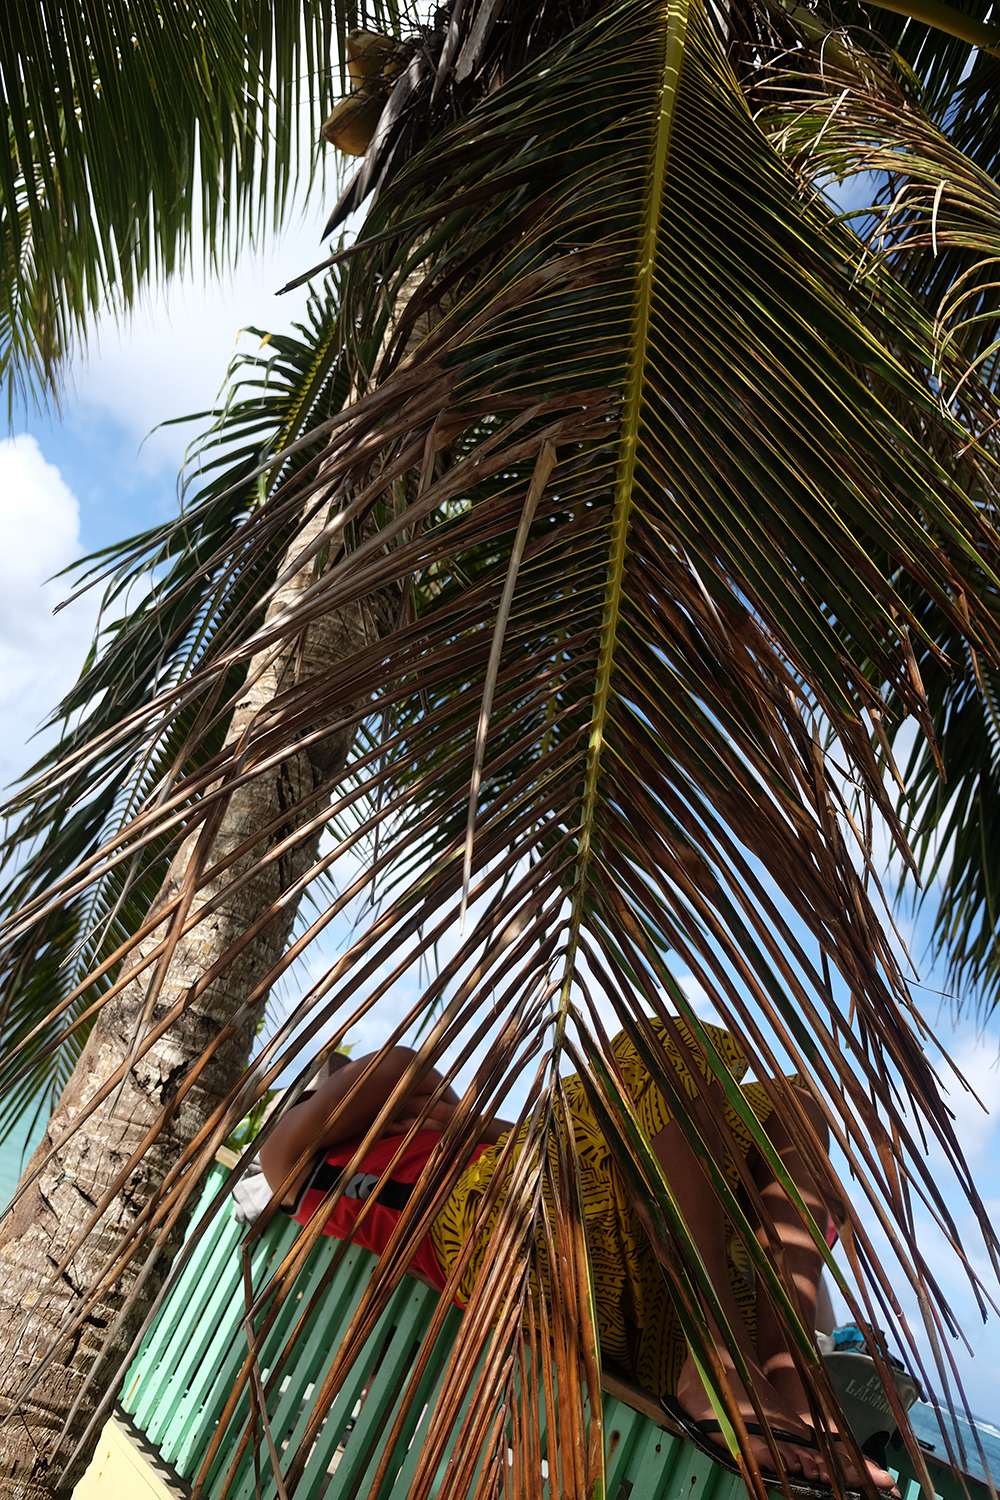 One of the nephew's sleeping under a coconut tree in Lalomanu, Upolu.